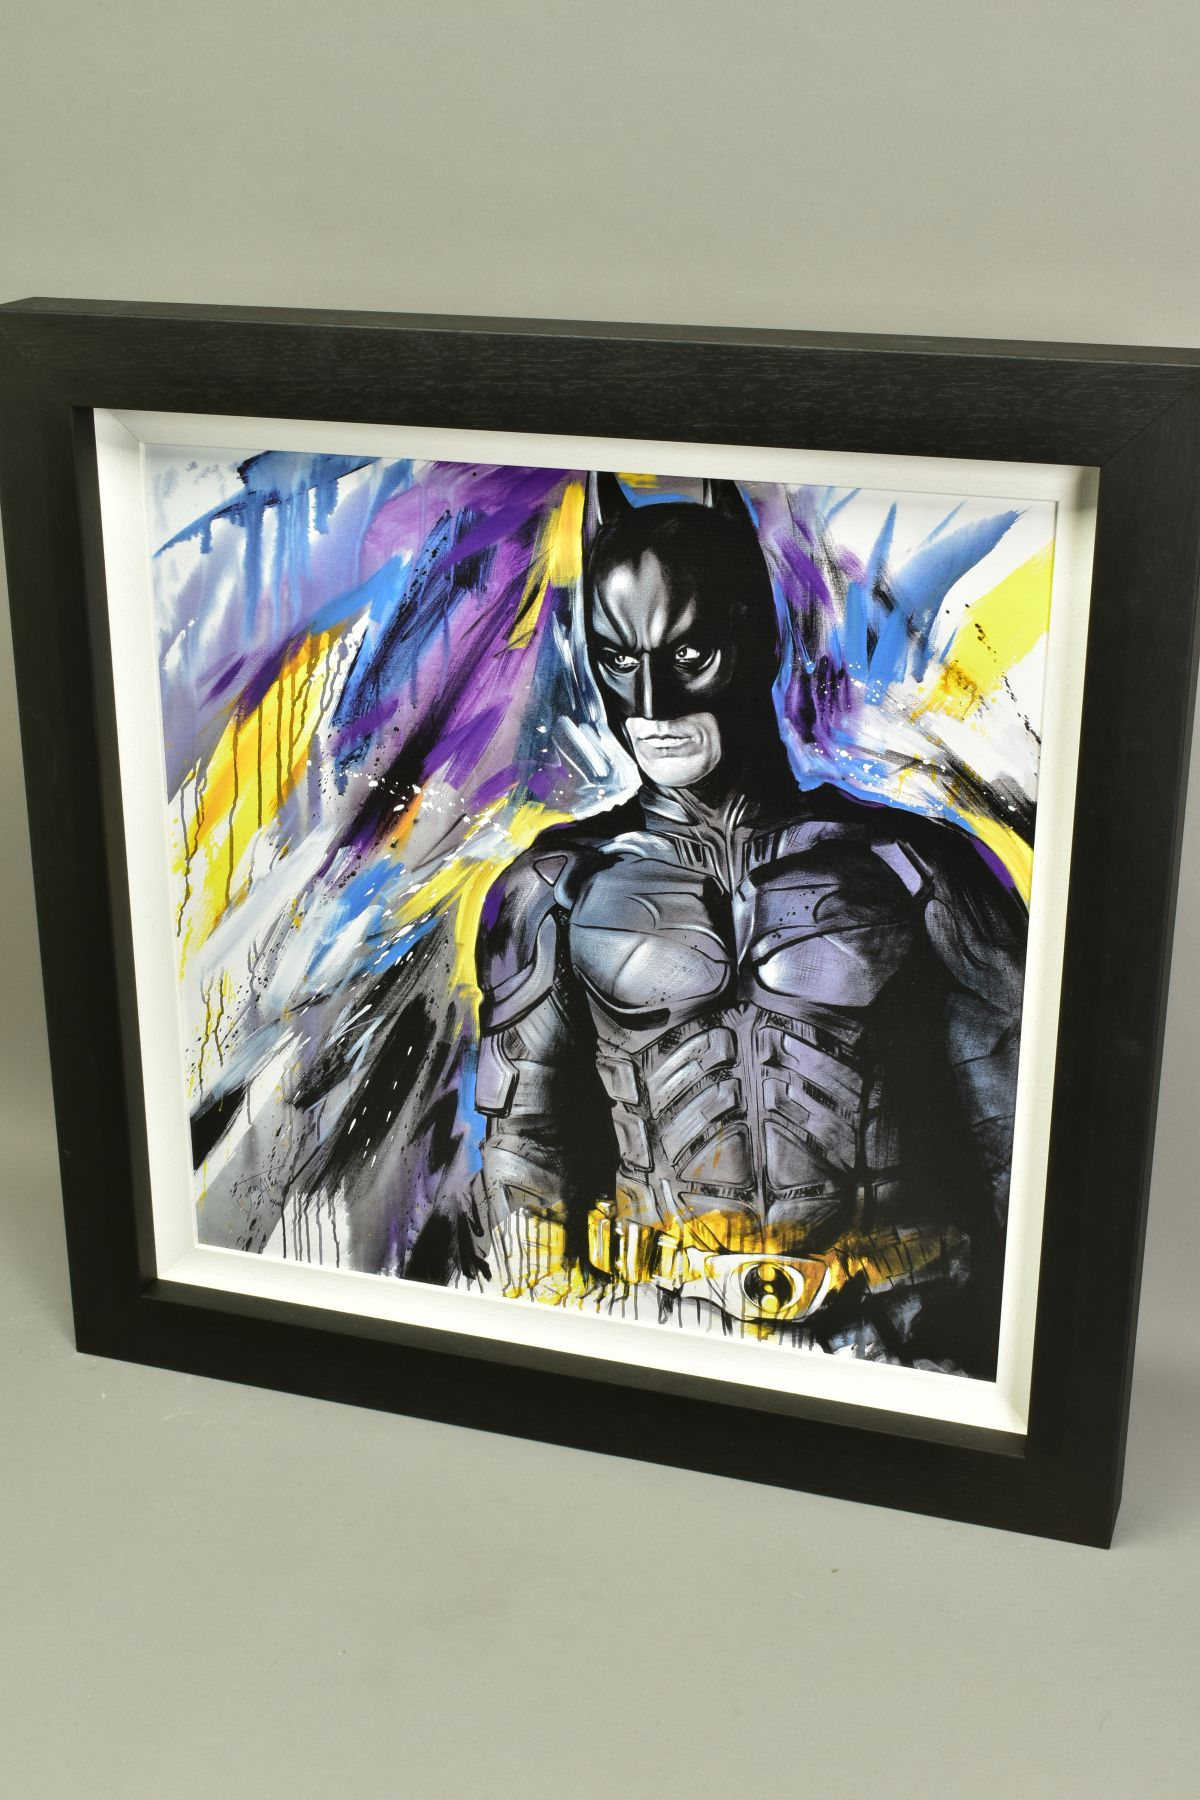 JEN ALLEN (BRITISH 1979), 'Silent Guardian', a Limited Edition print of Batman, 10/195, signed lower - Image 5 of 6